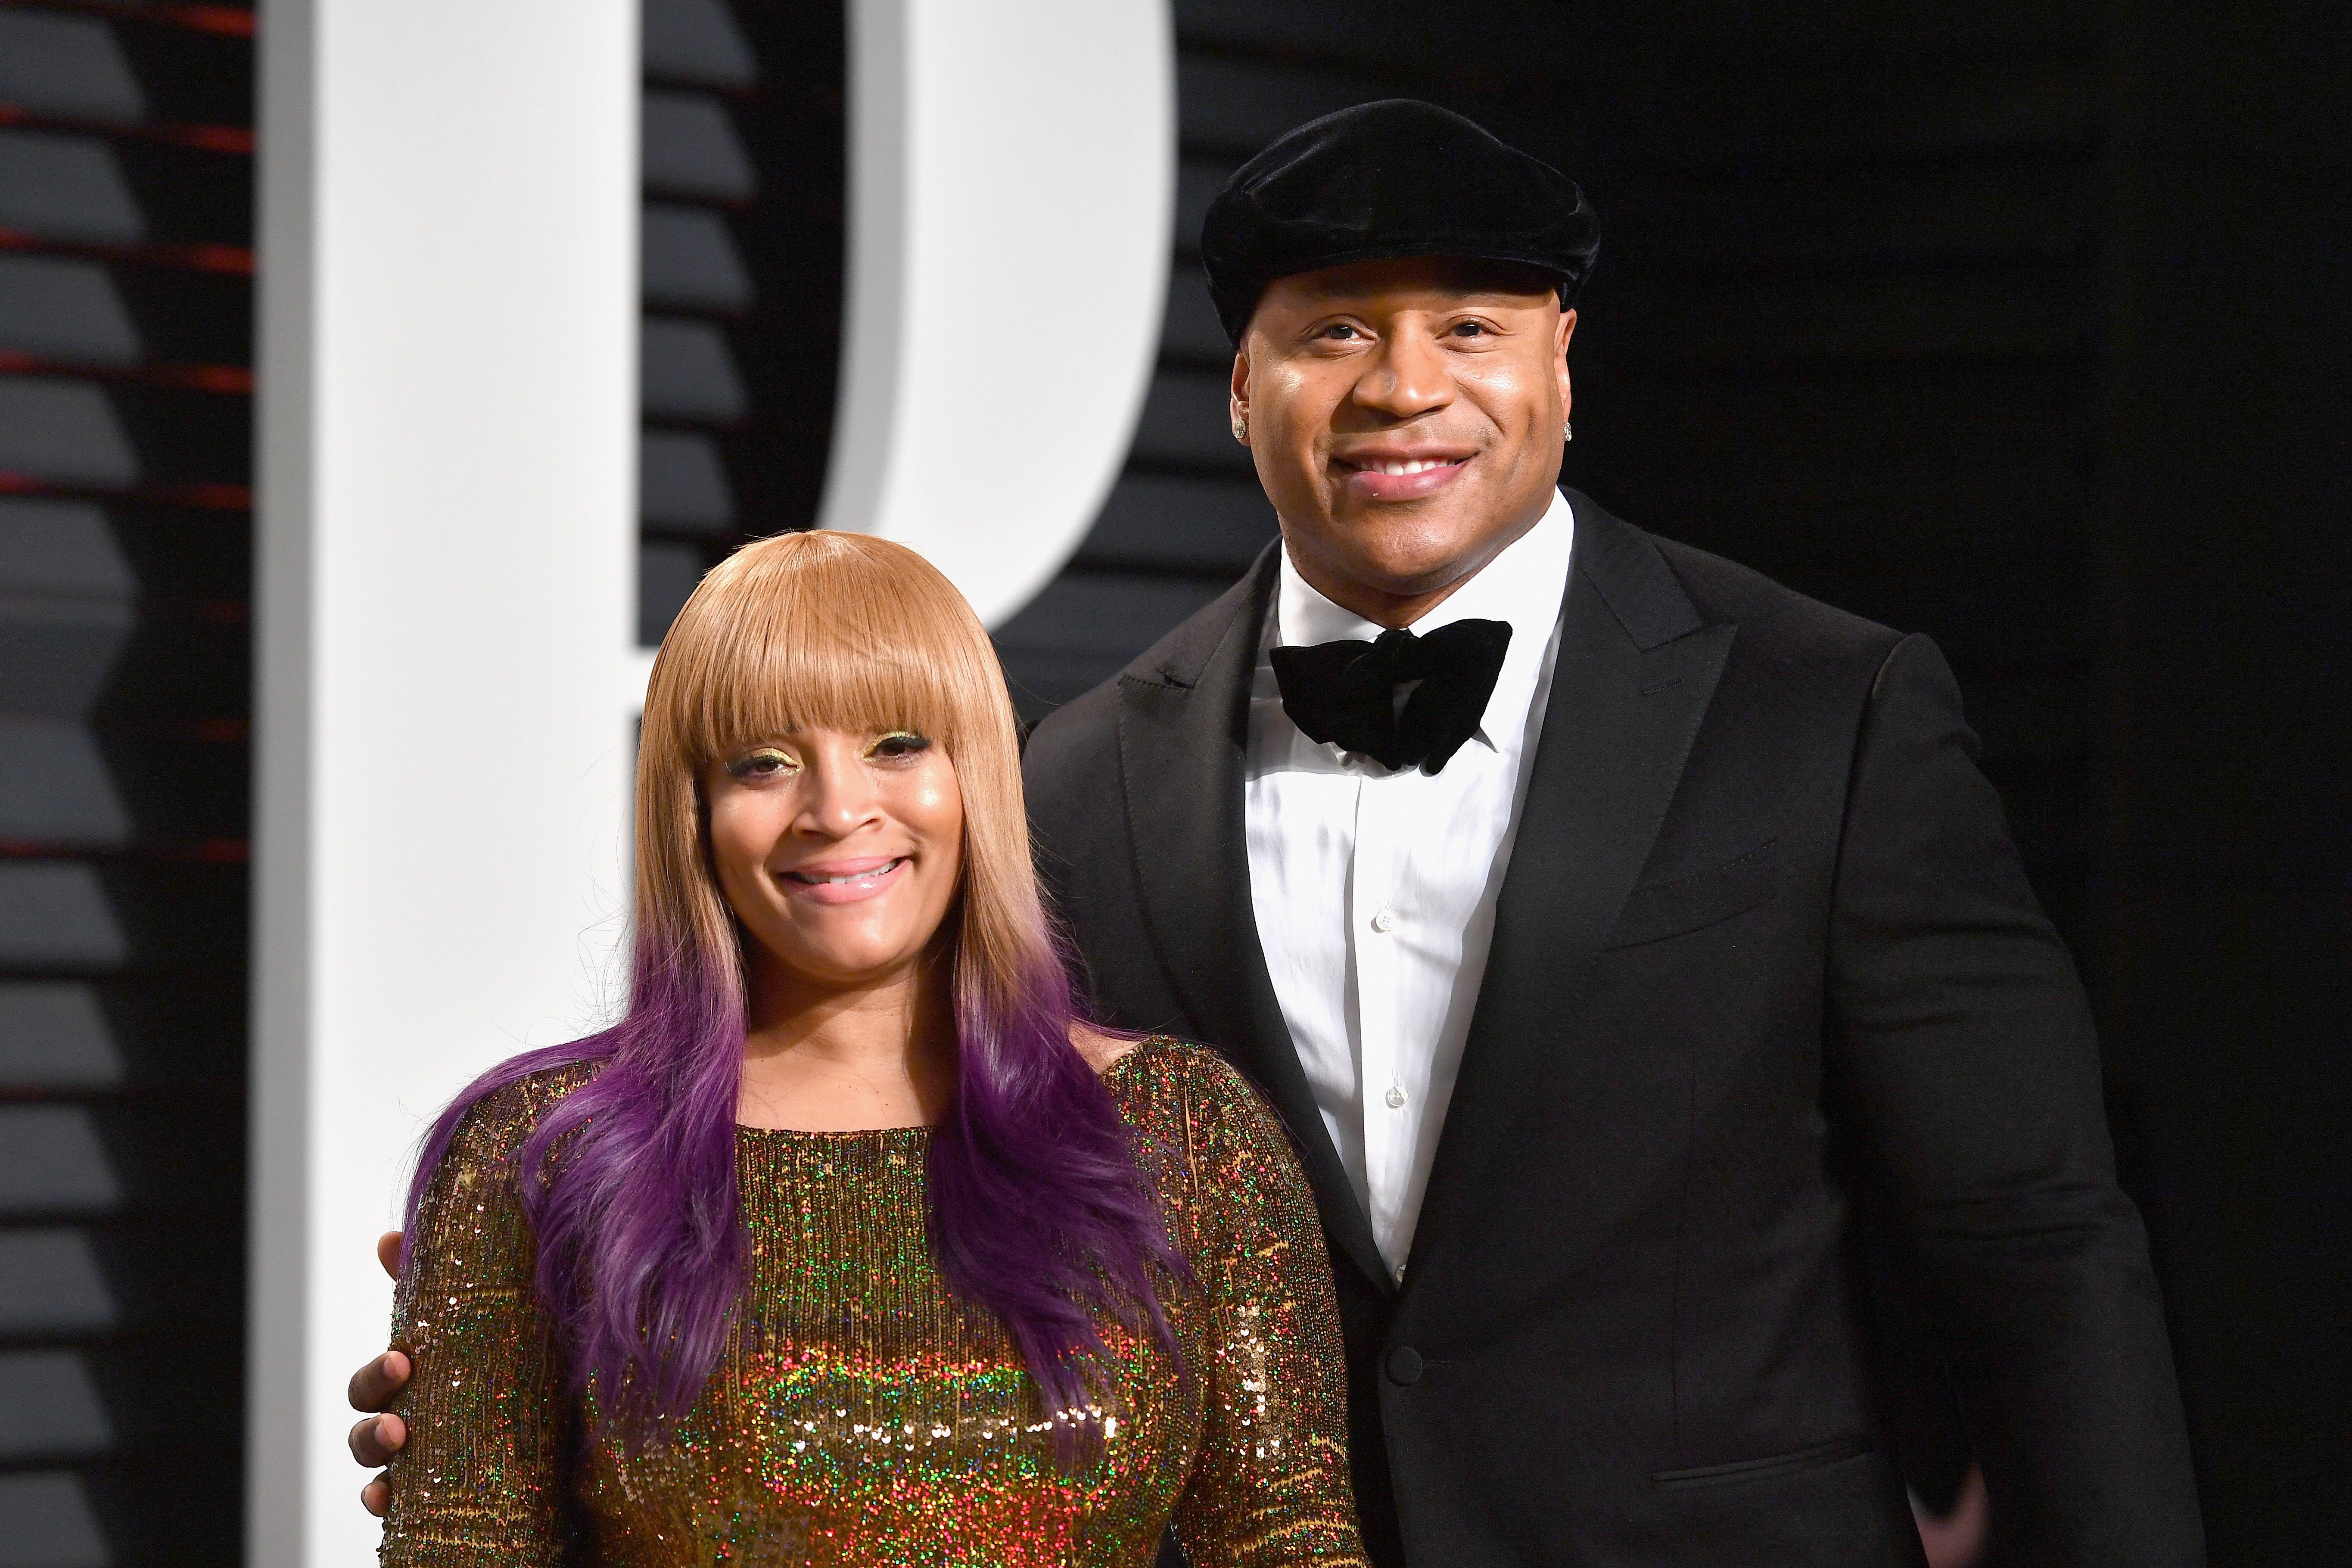 LL Cool J and Simone Smith at the 2017 Vanity Fair Oscar Party at Wallis Annenberg Center for the Performing Arts on February 26, 2017 in Beverly Hills, California   Source: Getty Images